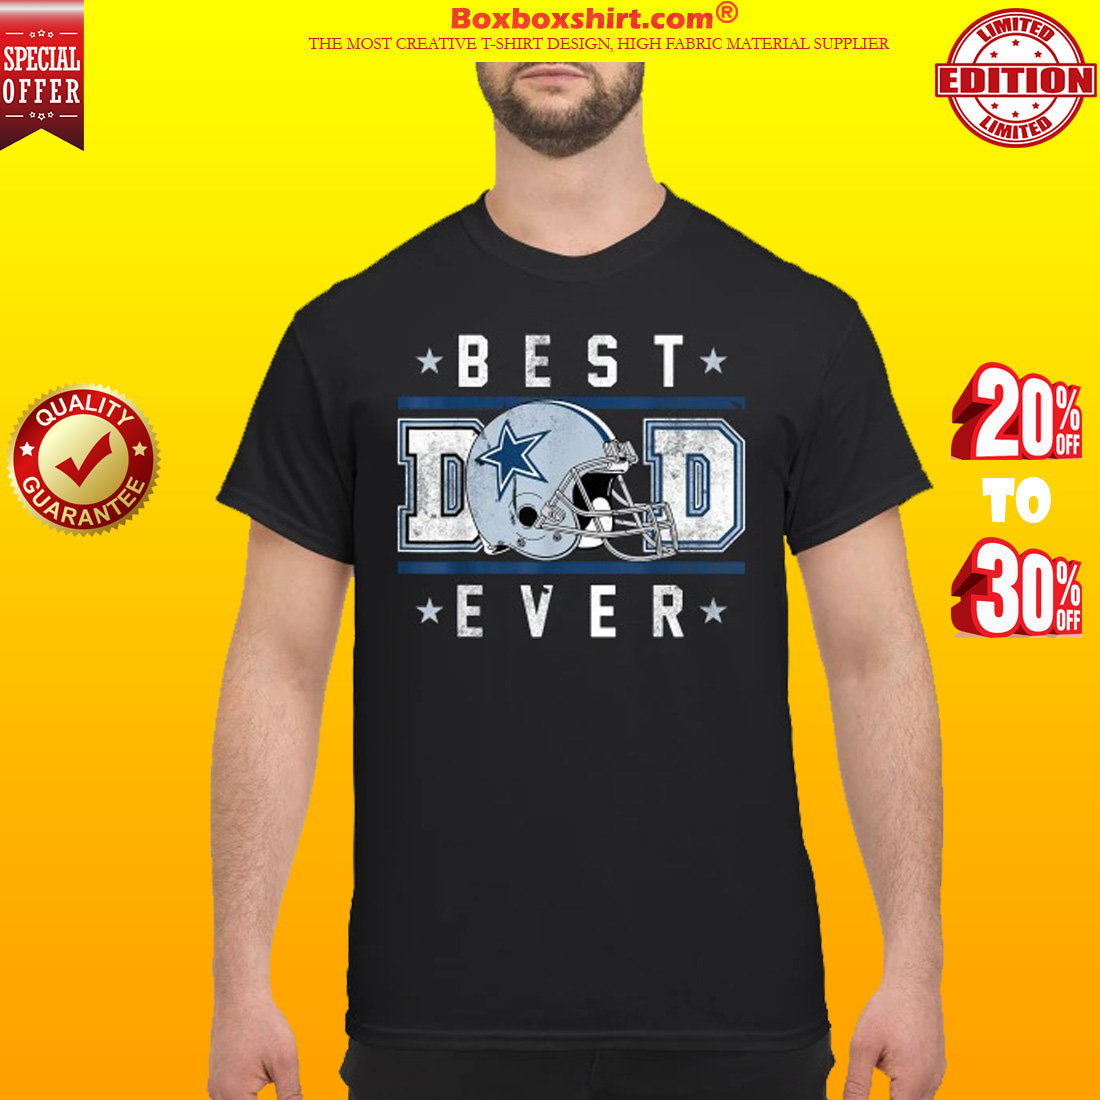 af30626ffdb HOTTEST] Best Dad Ever Football Dallas Cowboys shirt